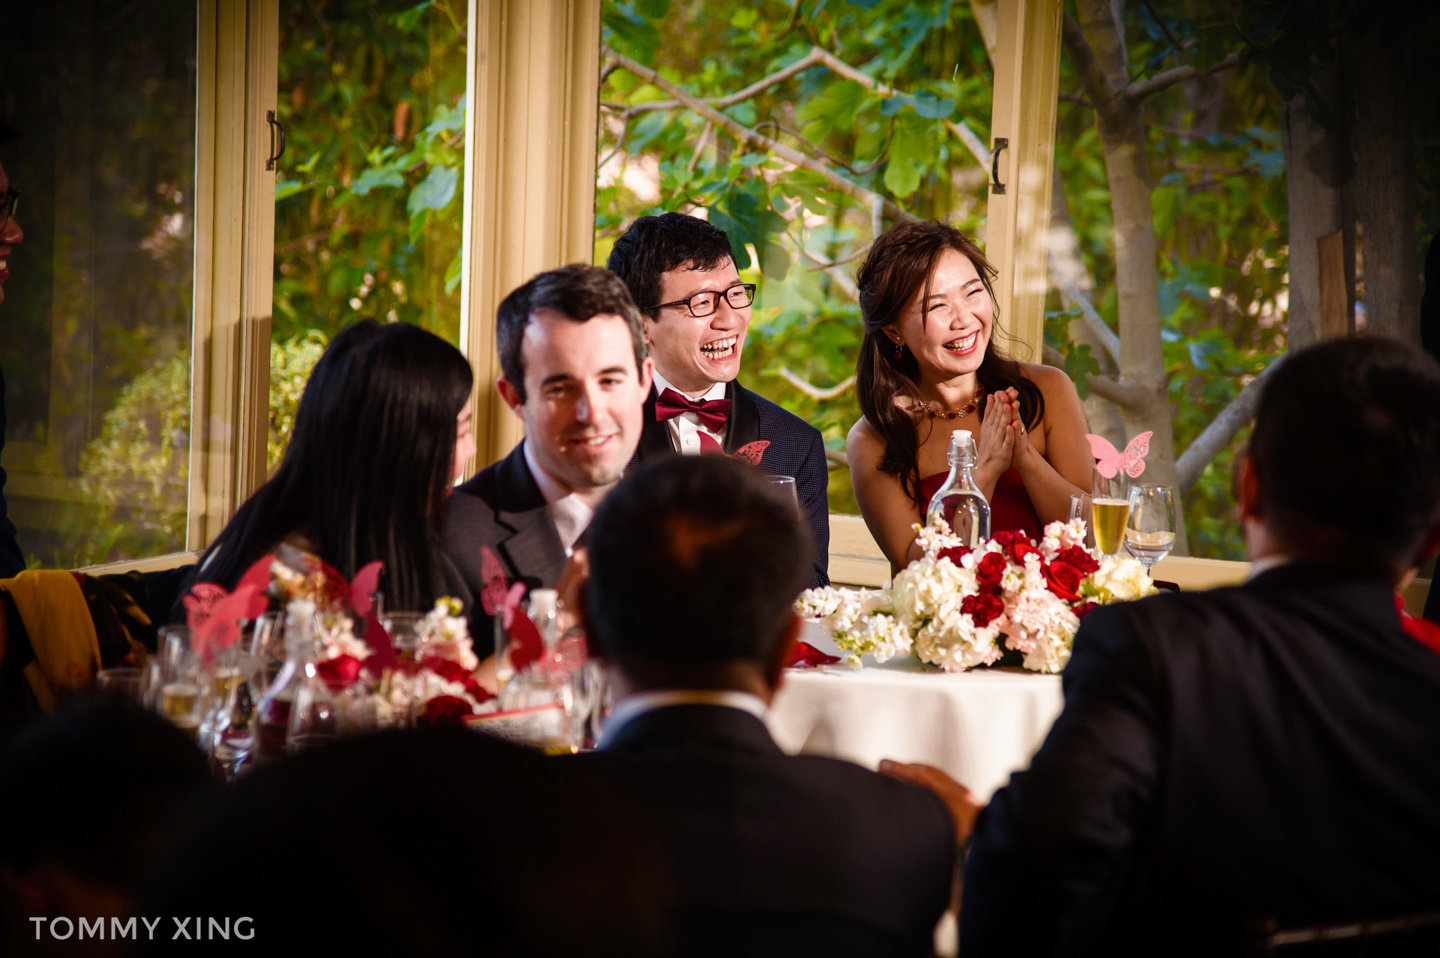 Los Angeles Wedding Photographer 洛杉矶婚礼婚纱摄影师 Tommy Xing-207.JPG